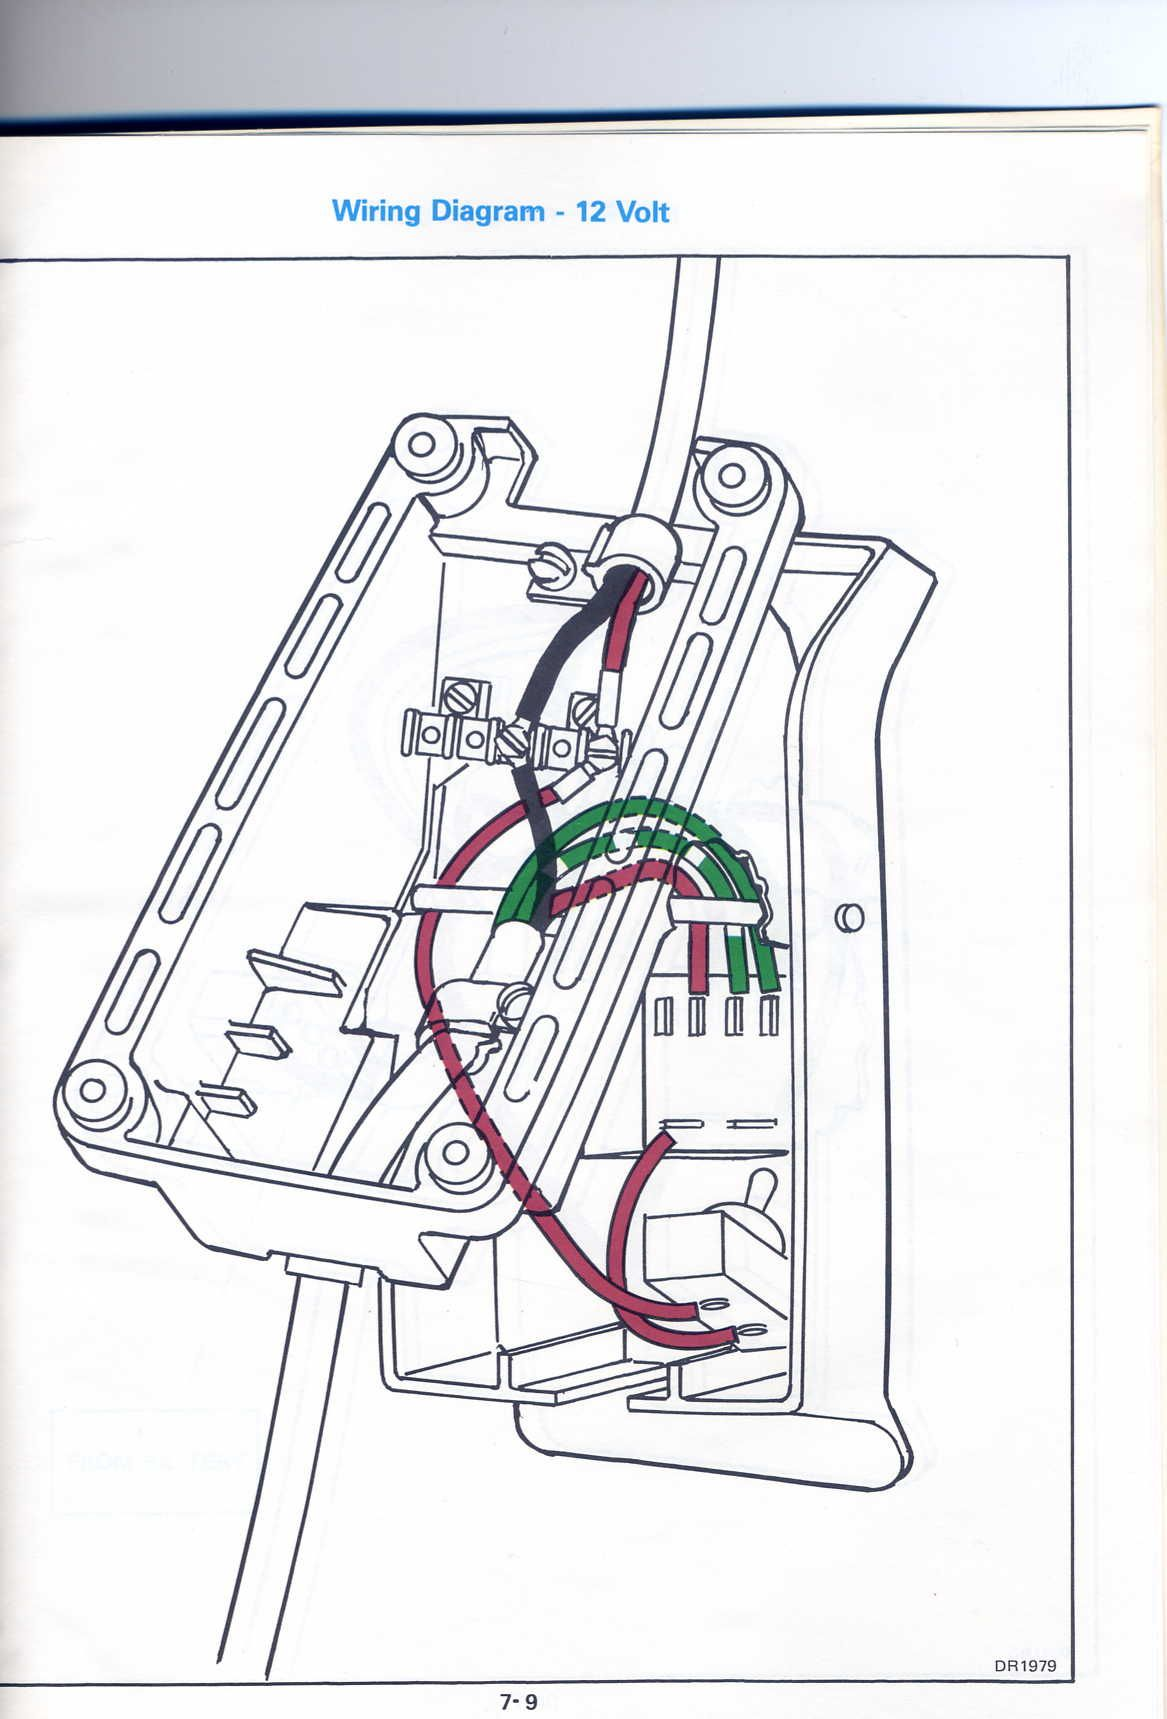 medium resolution of motorguide trolling motor wiring diagram trying to repair a friends 1986 johnson trolling motor model does anyone have a wiring diagram design